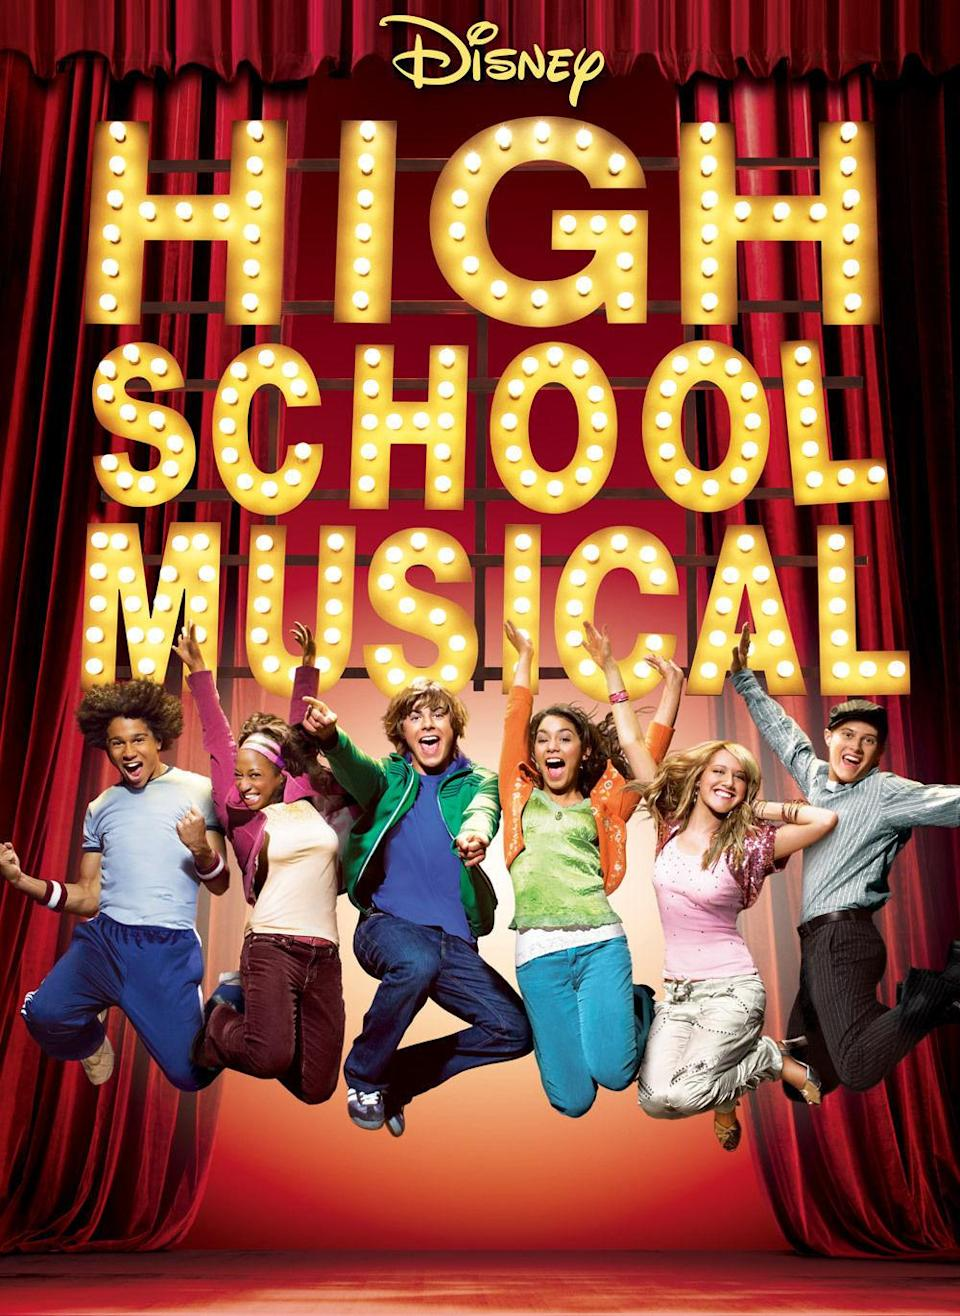 <p>The Zac Efron film that started it all. (Zac Efron's career.) Come re-live the joys of these spunky teens who must choose between popularity and theater. <br><br><em>(Credit: Disney Channel)</em> </p>